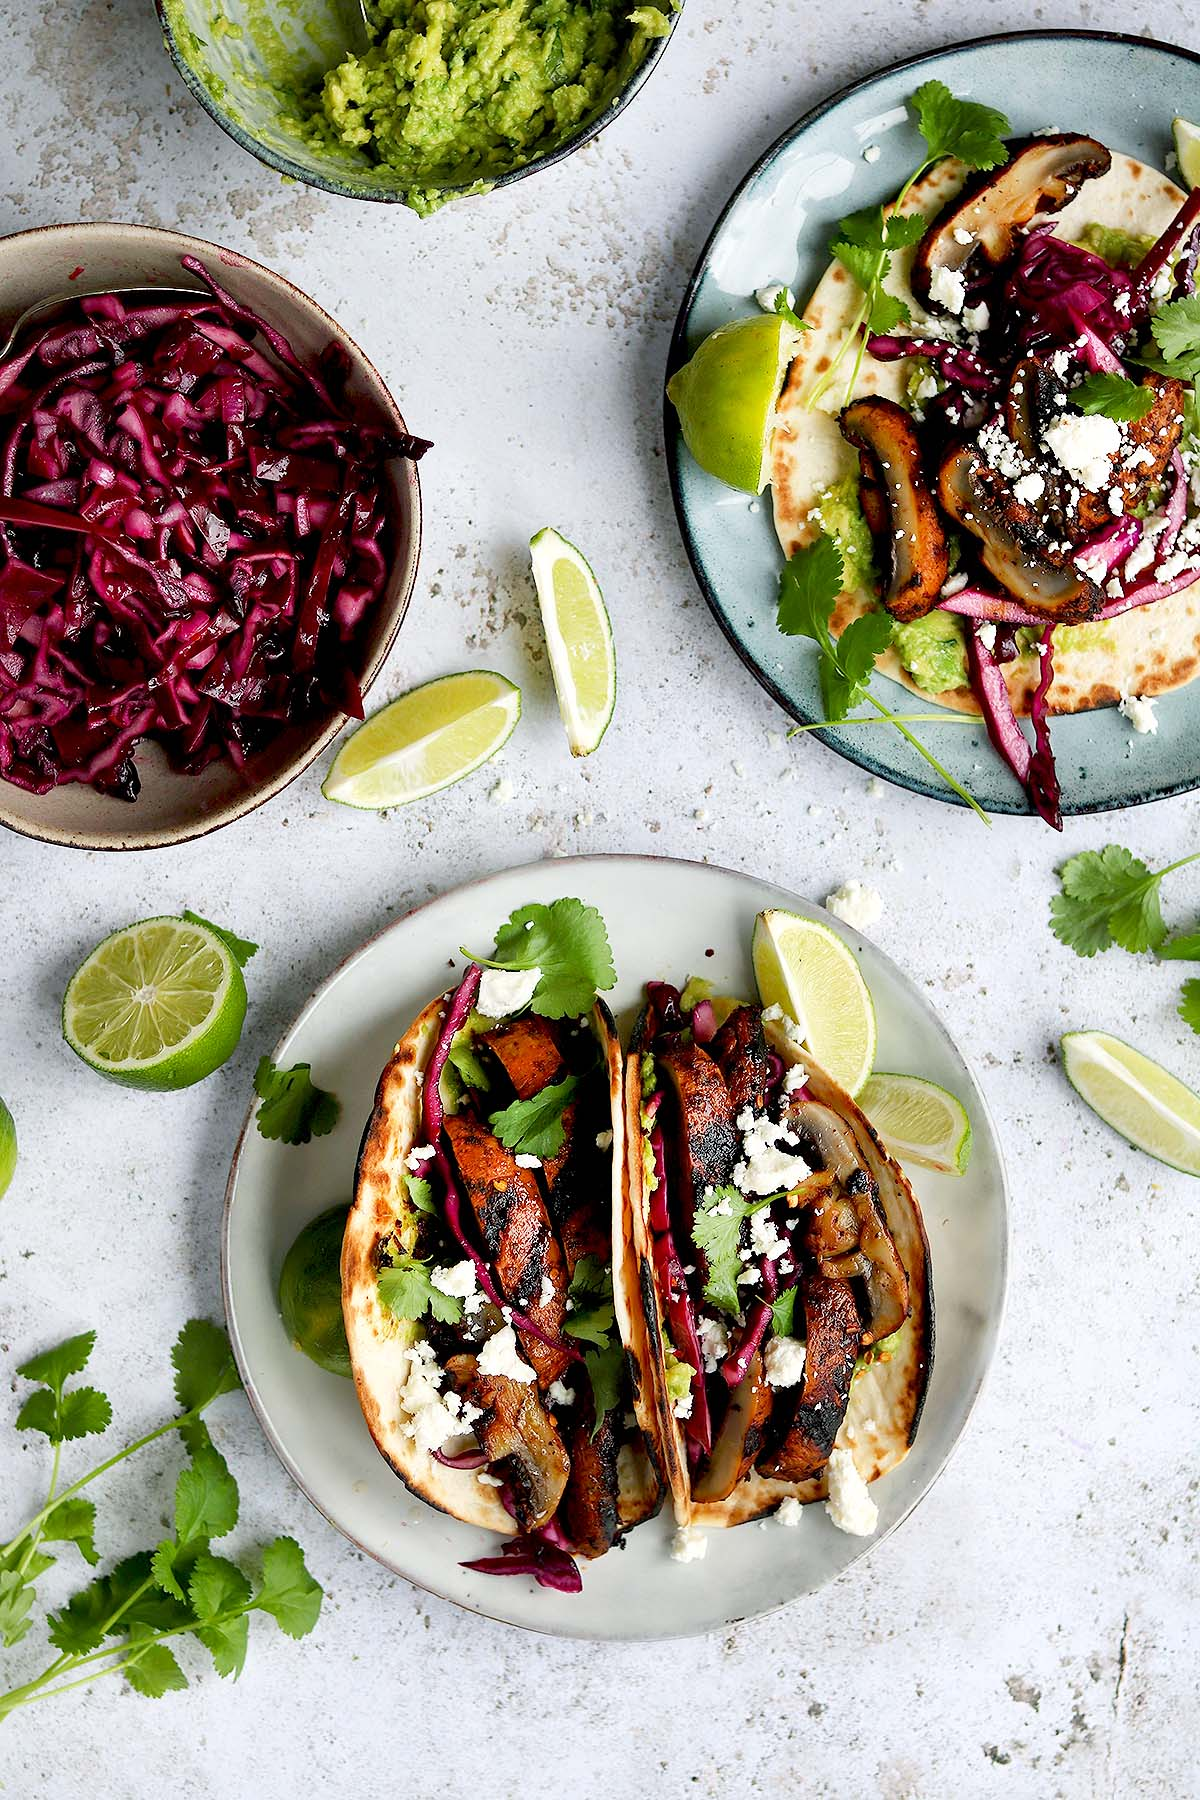 Mushrooms in a Taco with Red Cabbage Slaw and smashed Avocado, with Lime wedges and Coriander garnish.